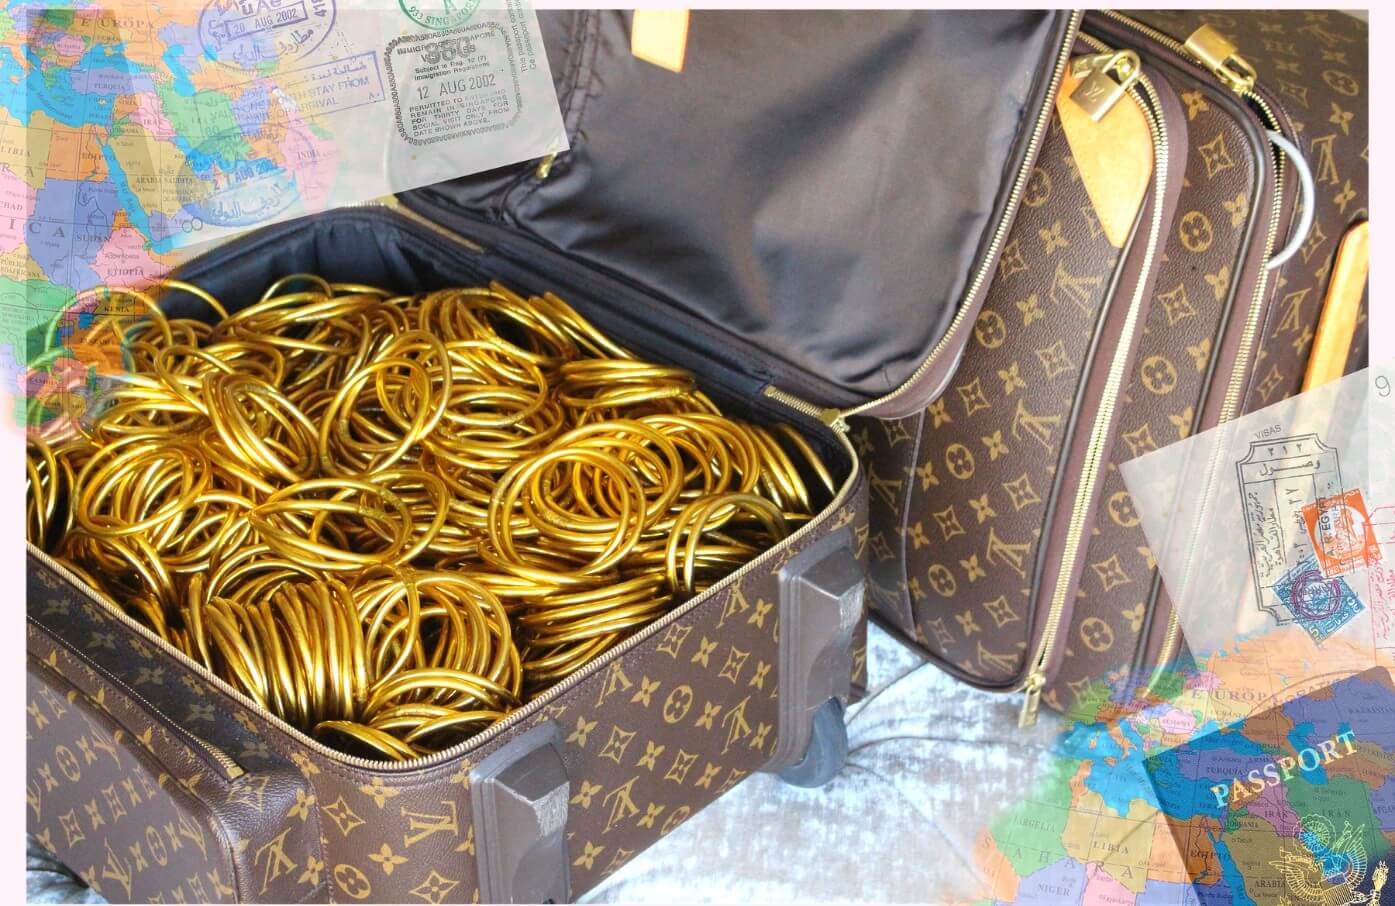 Louis vuitton bag filled with gold bangles | BuDhaGirl